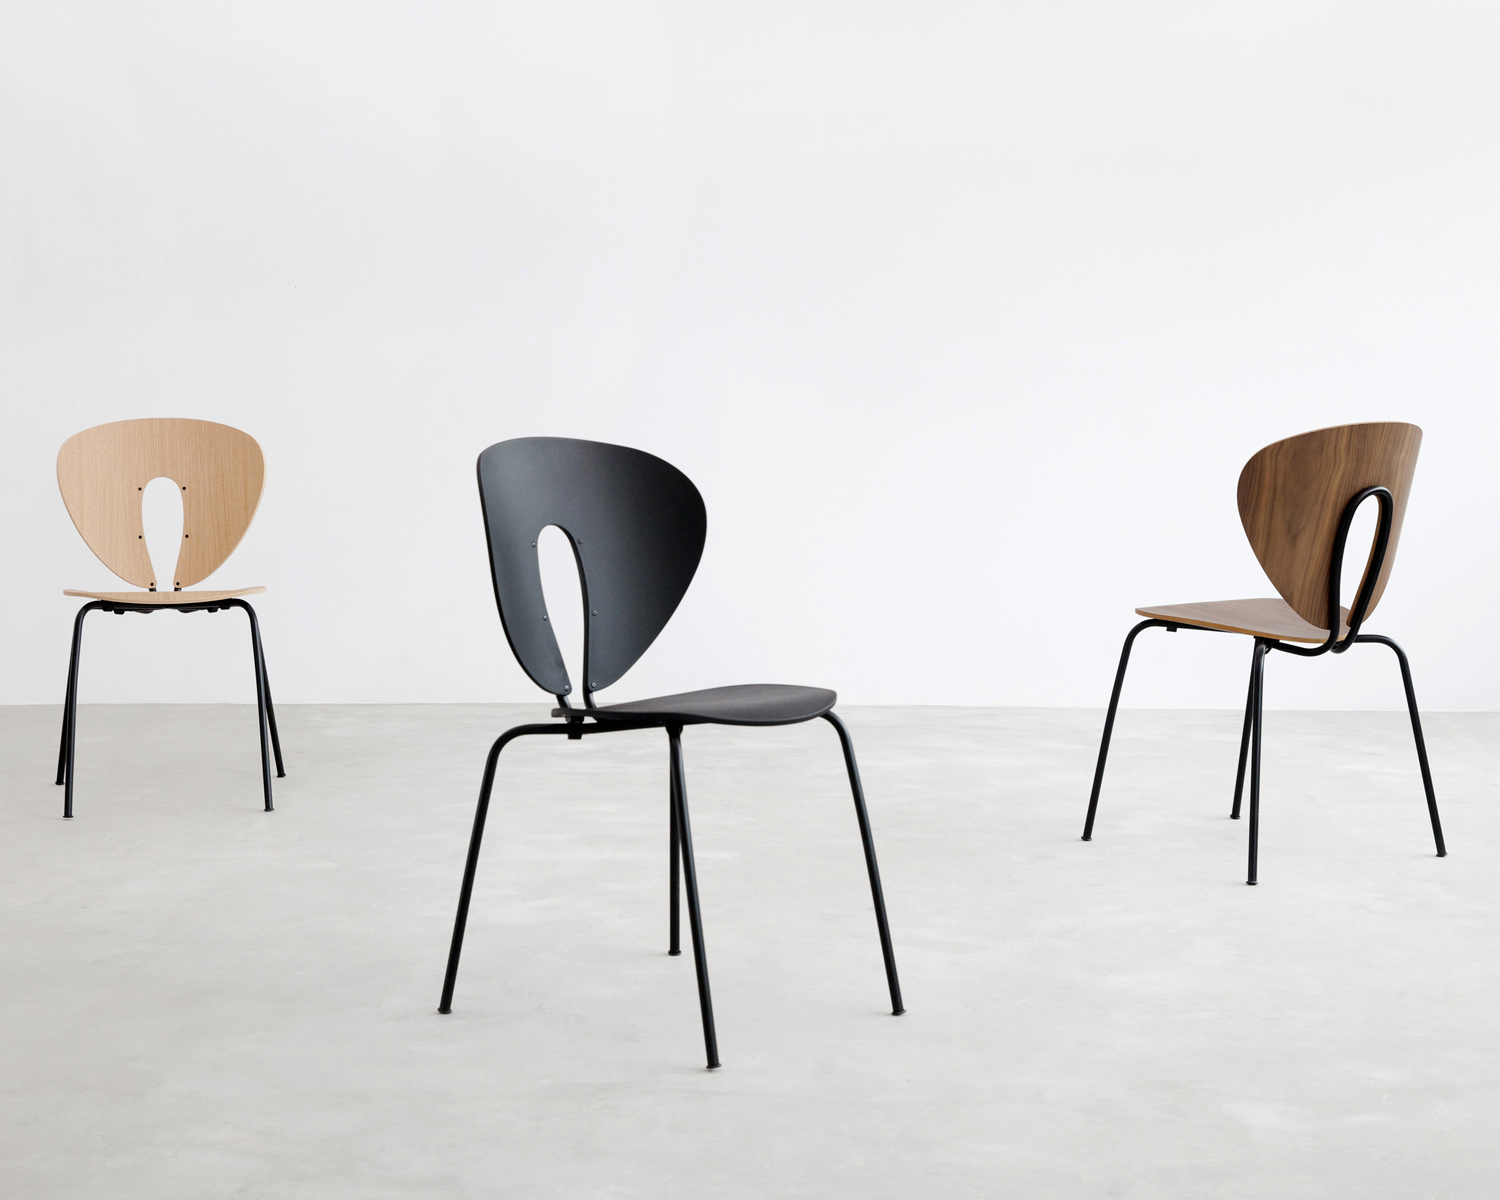 Stua globus chair walnut with black frame